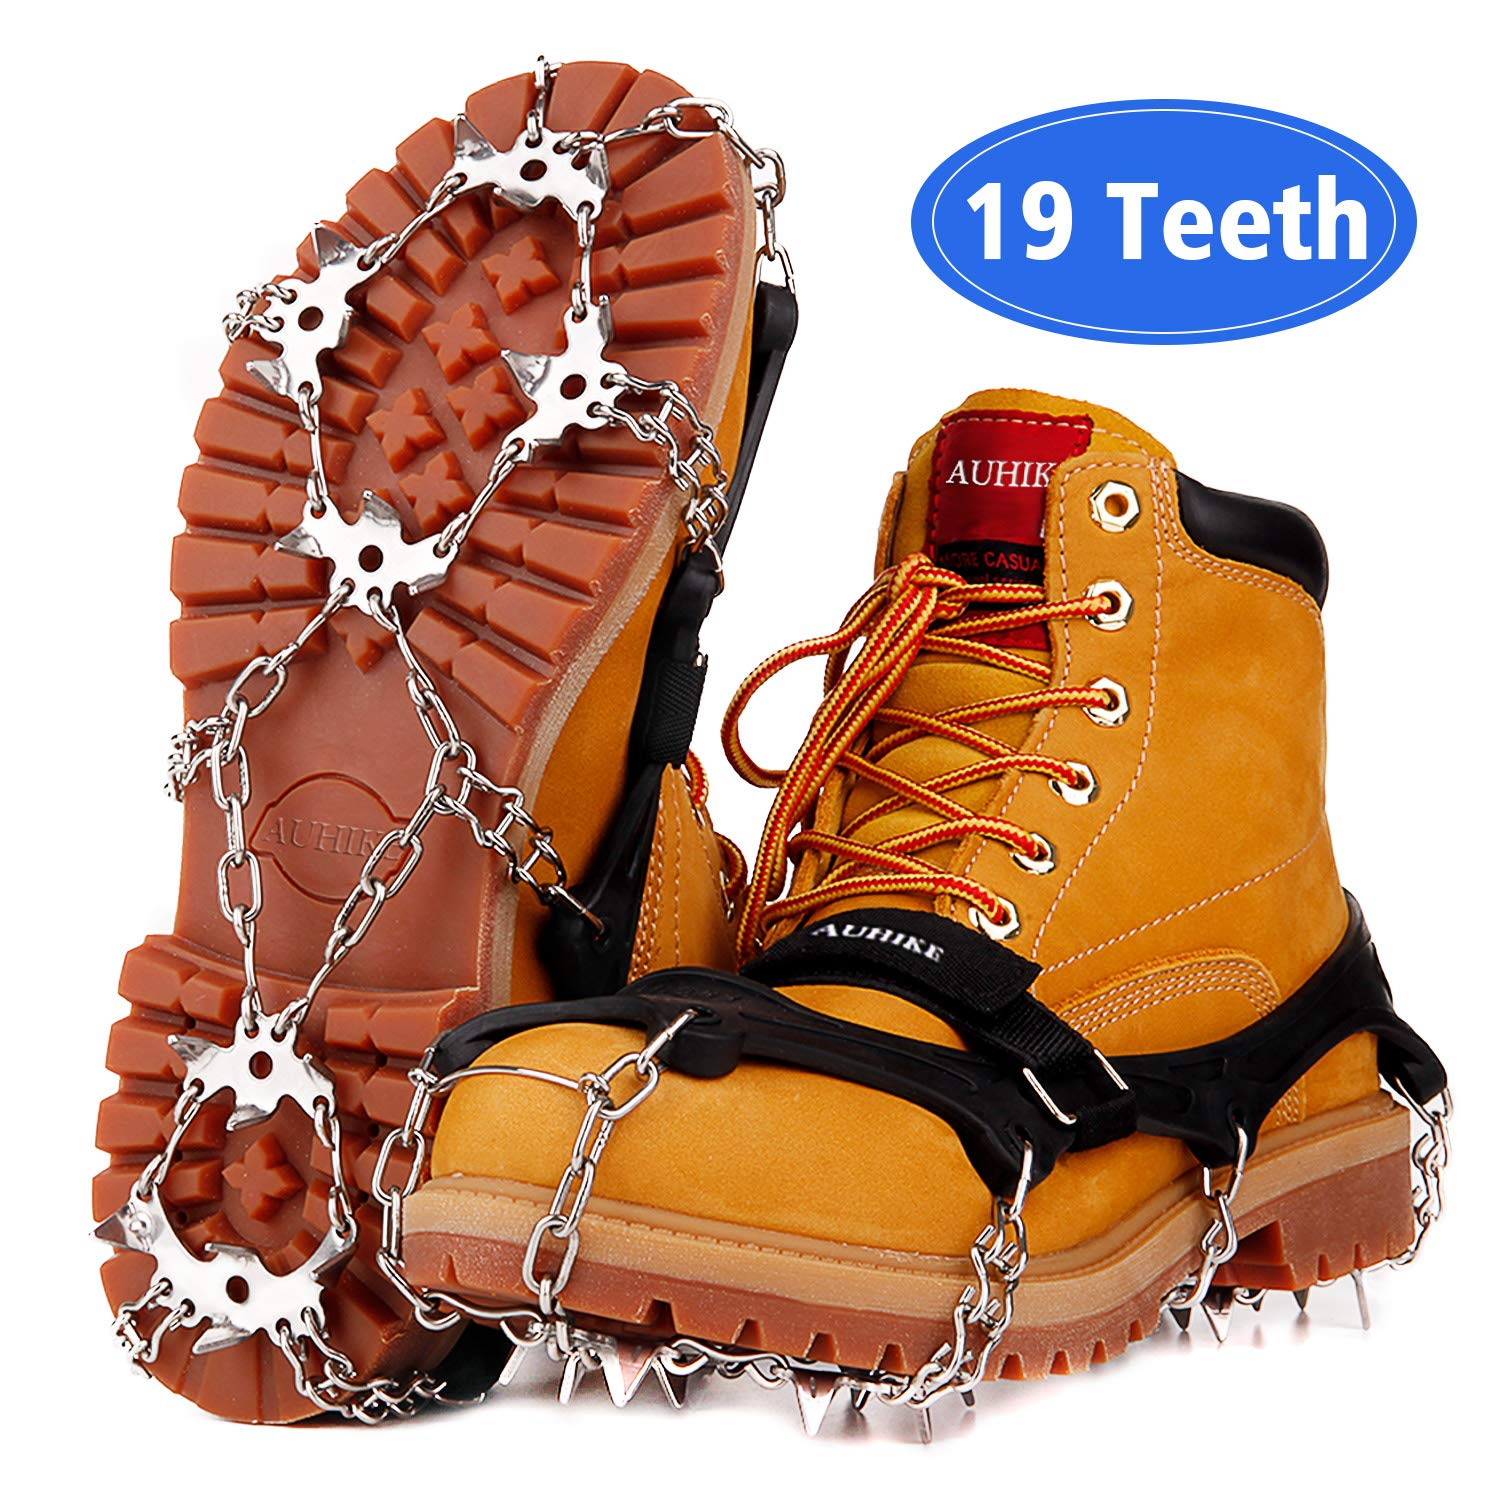 AUHIKE 19 Teeth Claws Crampons [Updated Version],Non-Slip Shoes Cover with Stainless Steel Chain for for Hiking Fishing Climbing Jogging Mountaineering Walking on Snow and Ice (Black, L) by AUHIKE